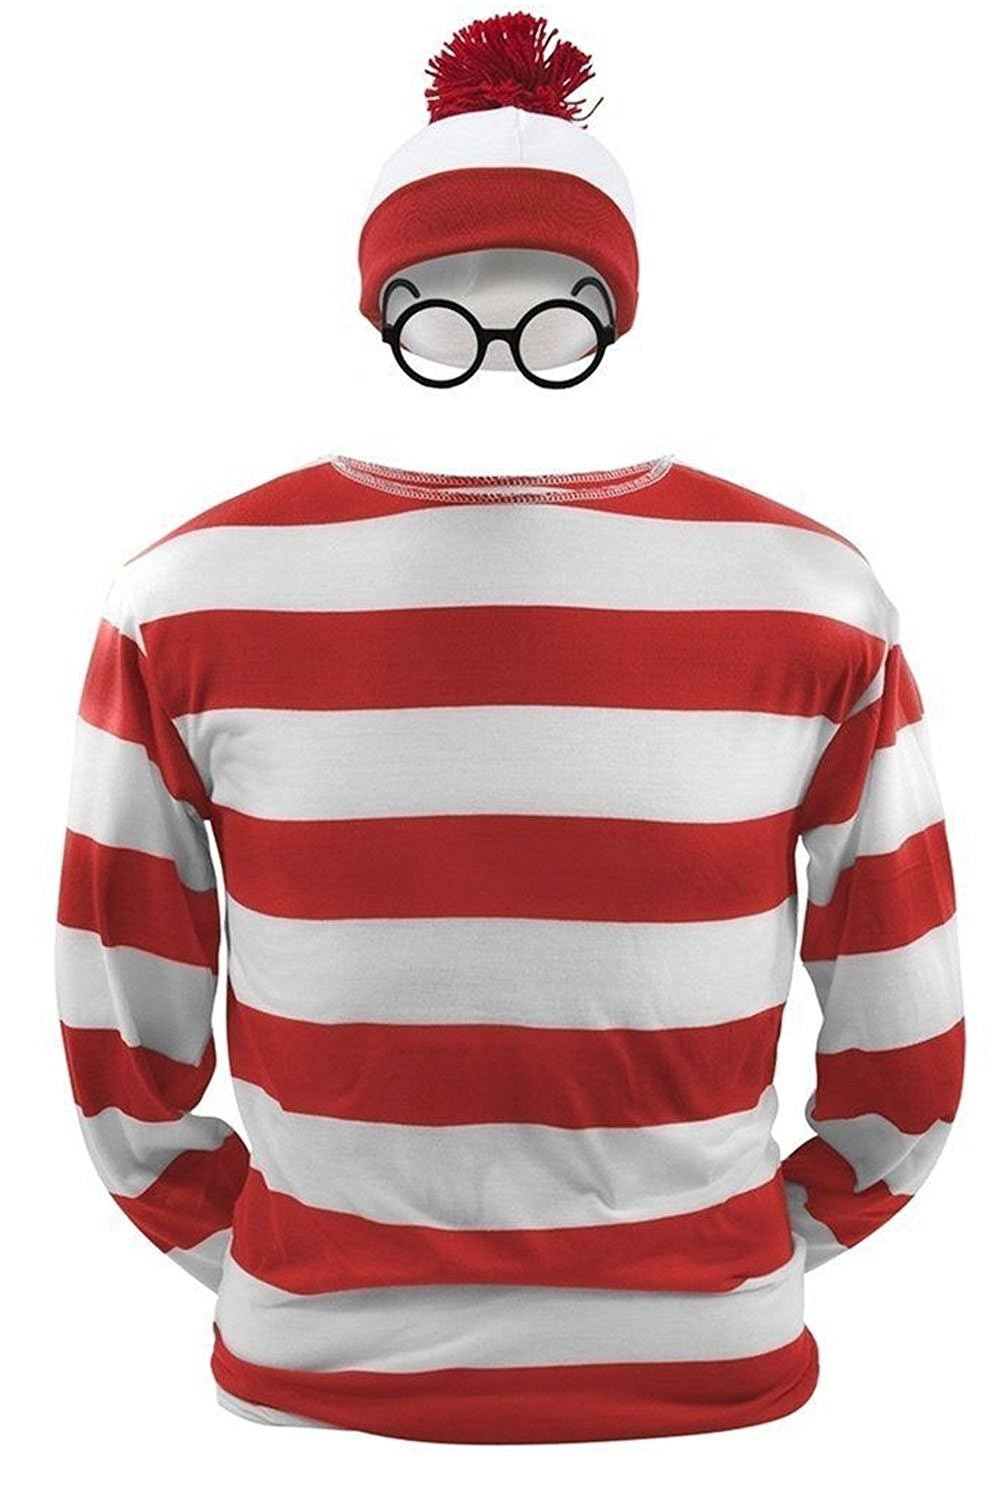 Where's Waldo Now Costume Funny Sweatshirt Hoodie Outfit Glasses Hat Cap Suits,Parent-Child Costumes